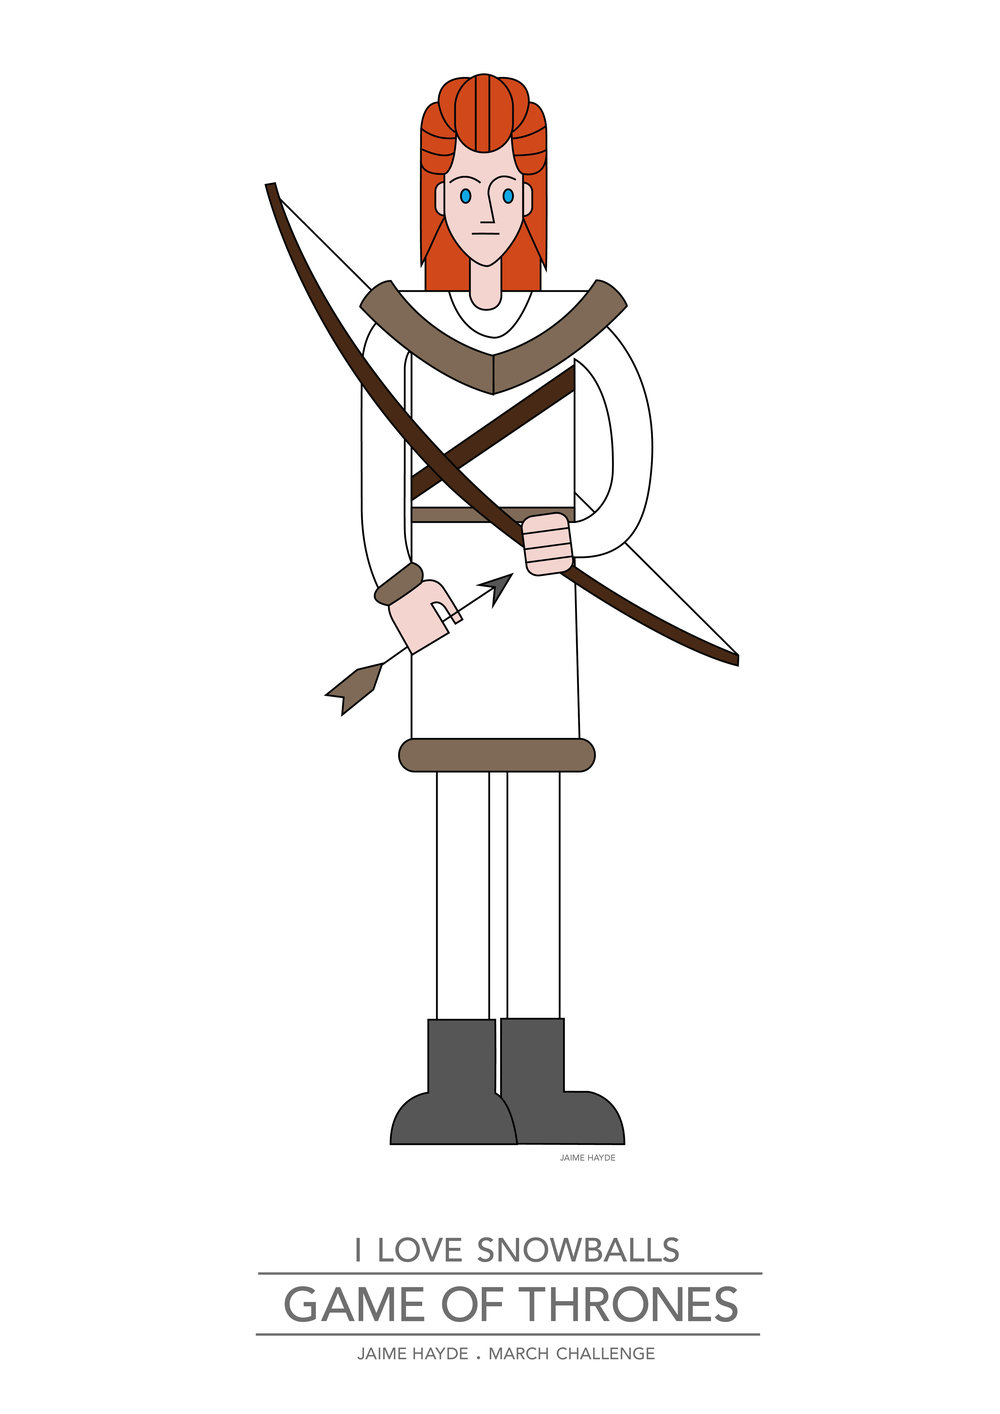 Game-of-thrones-Juego-de-tronos-ygritte.jpg